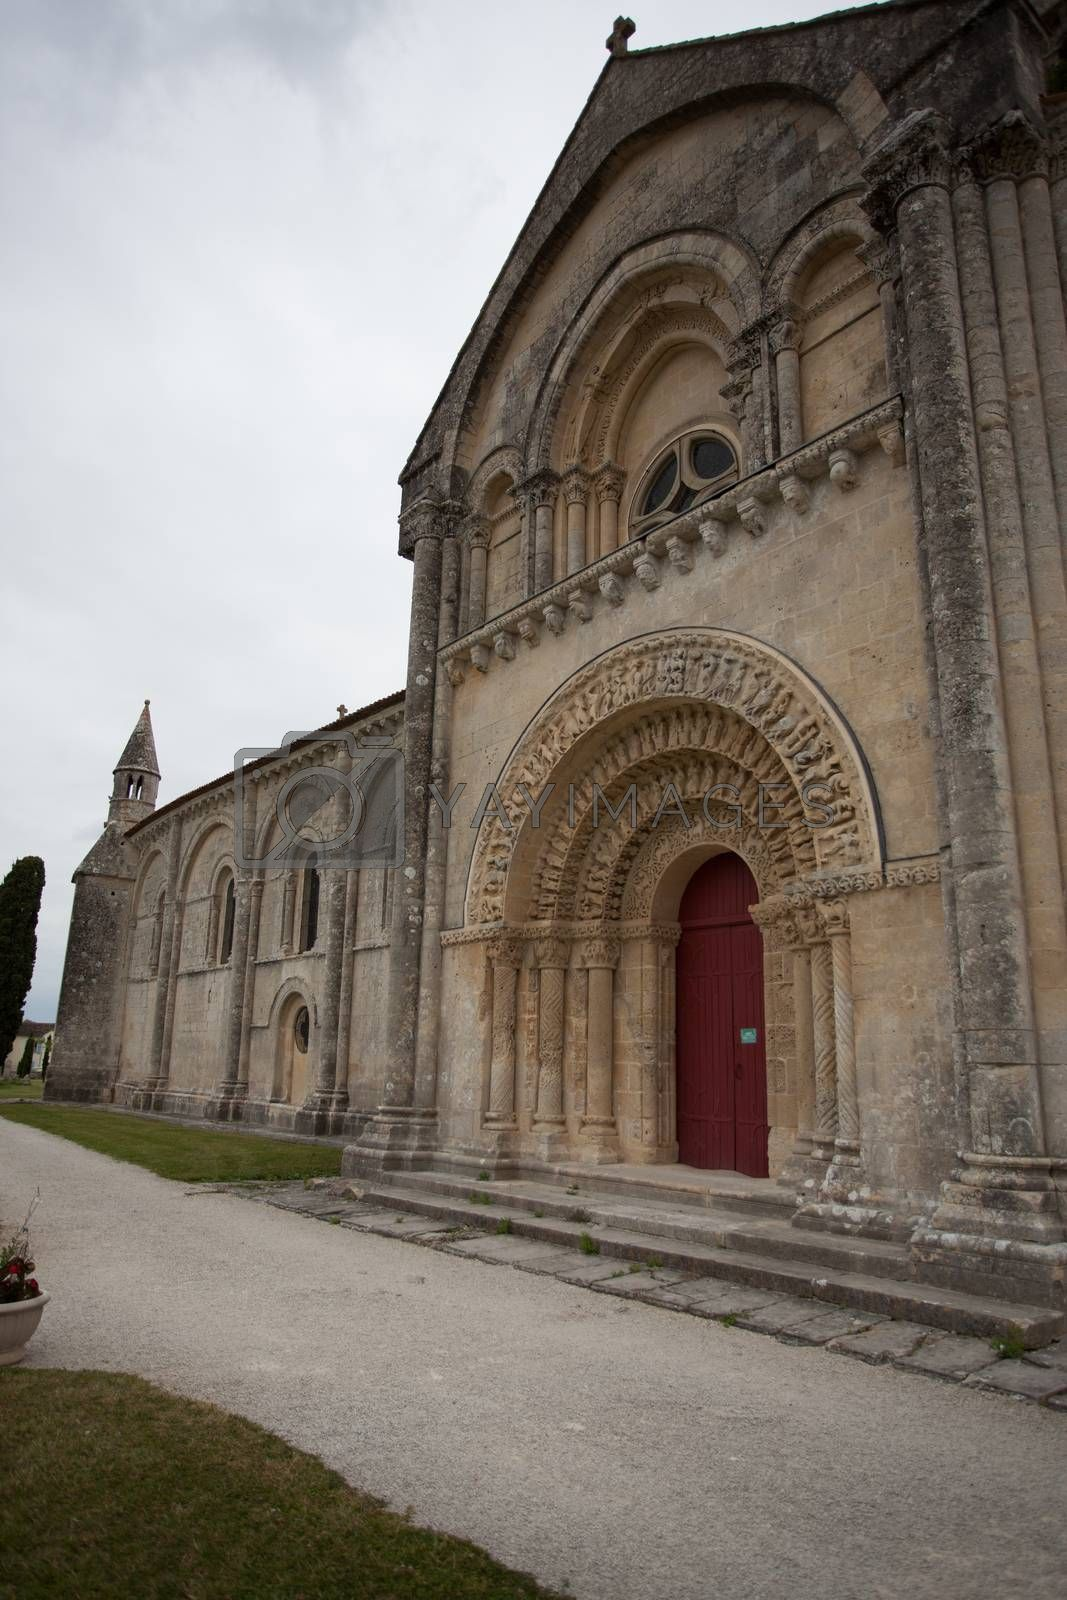 South facade view of Aulnay de Saintonge church in Charente Maritime region of France